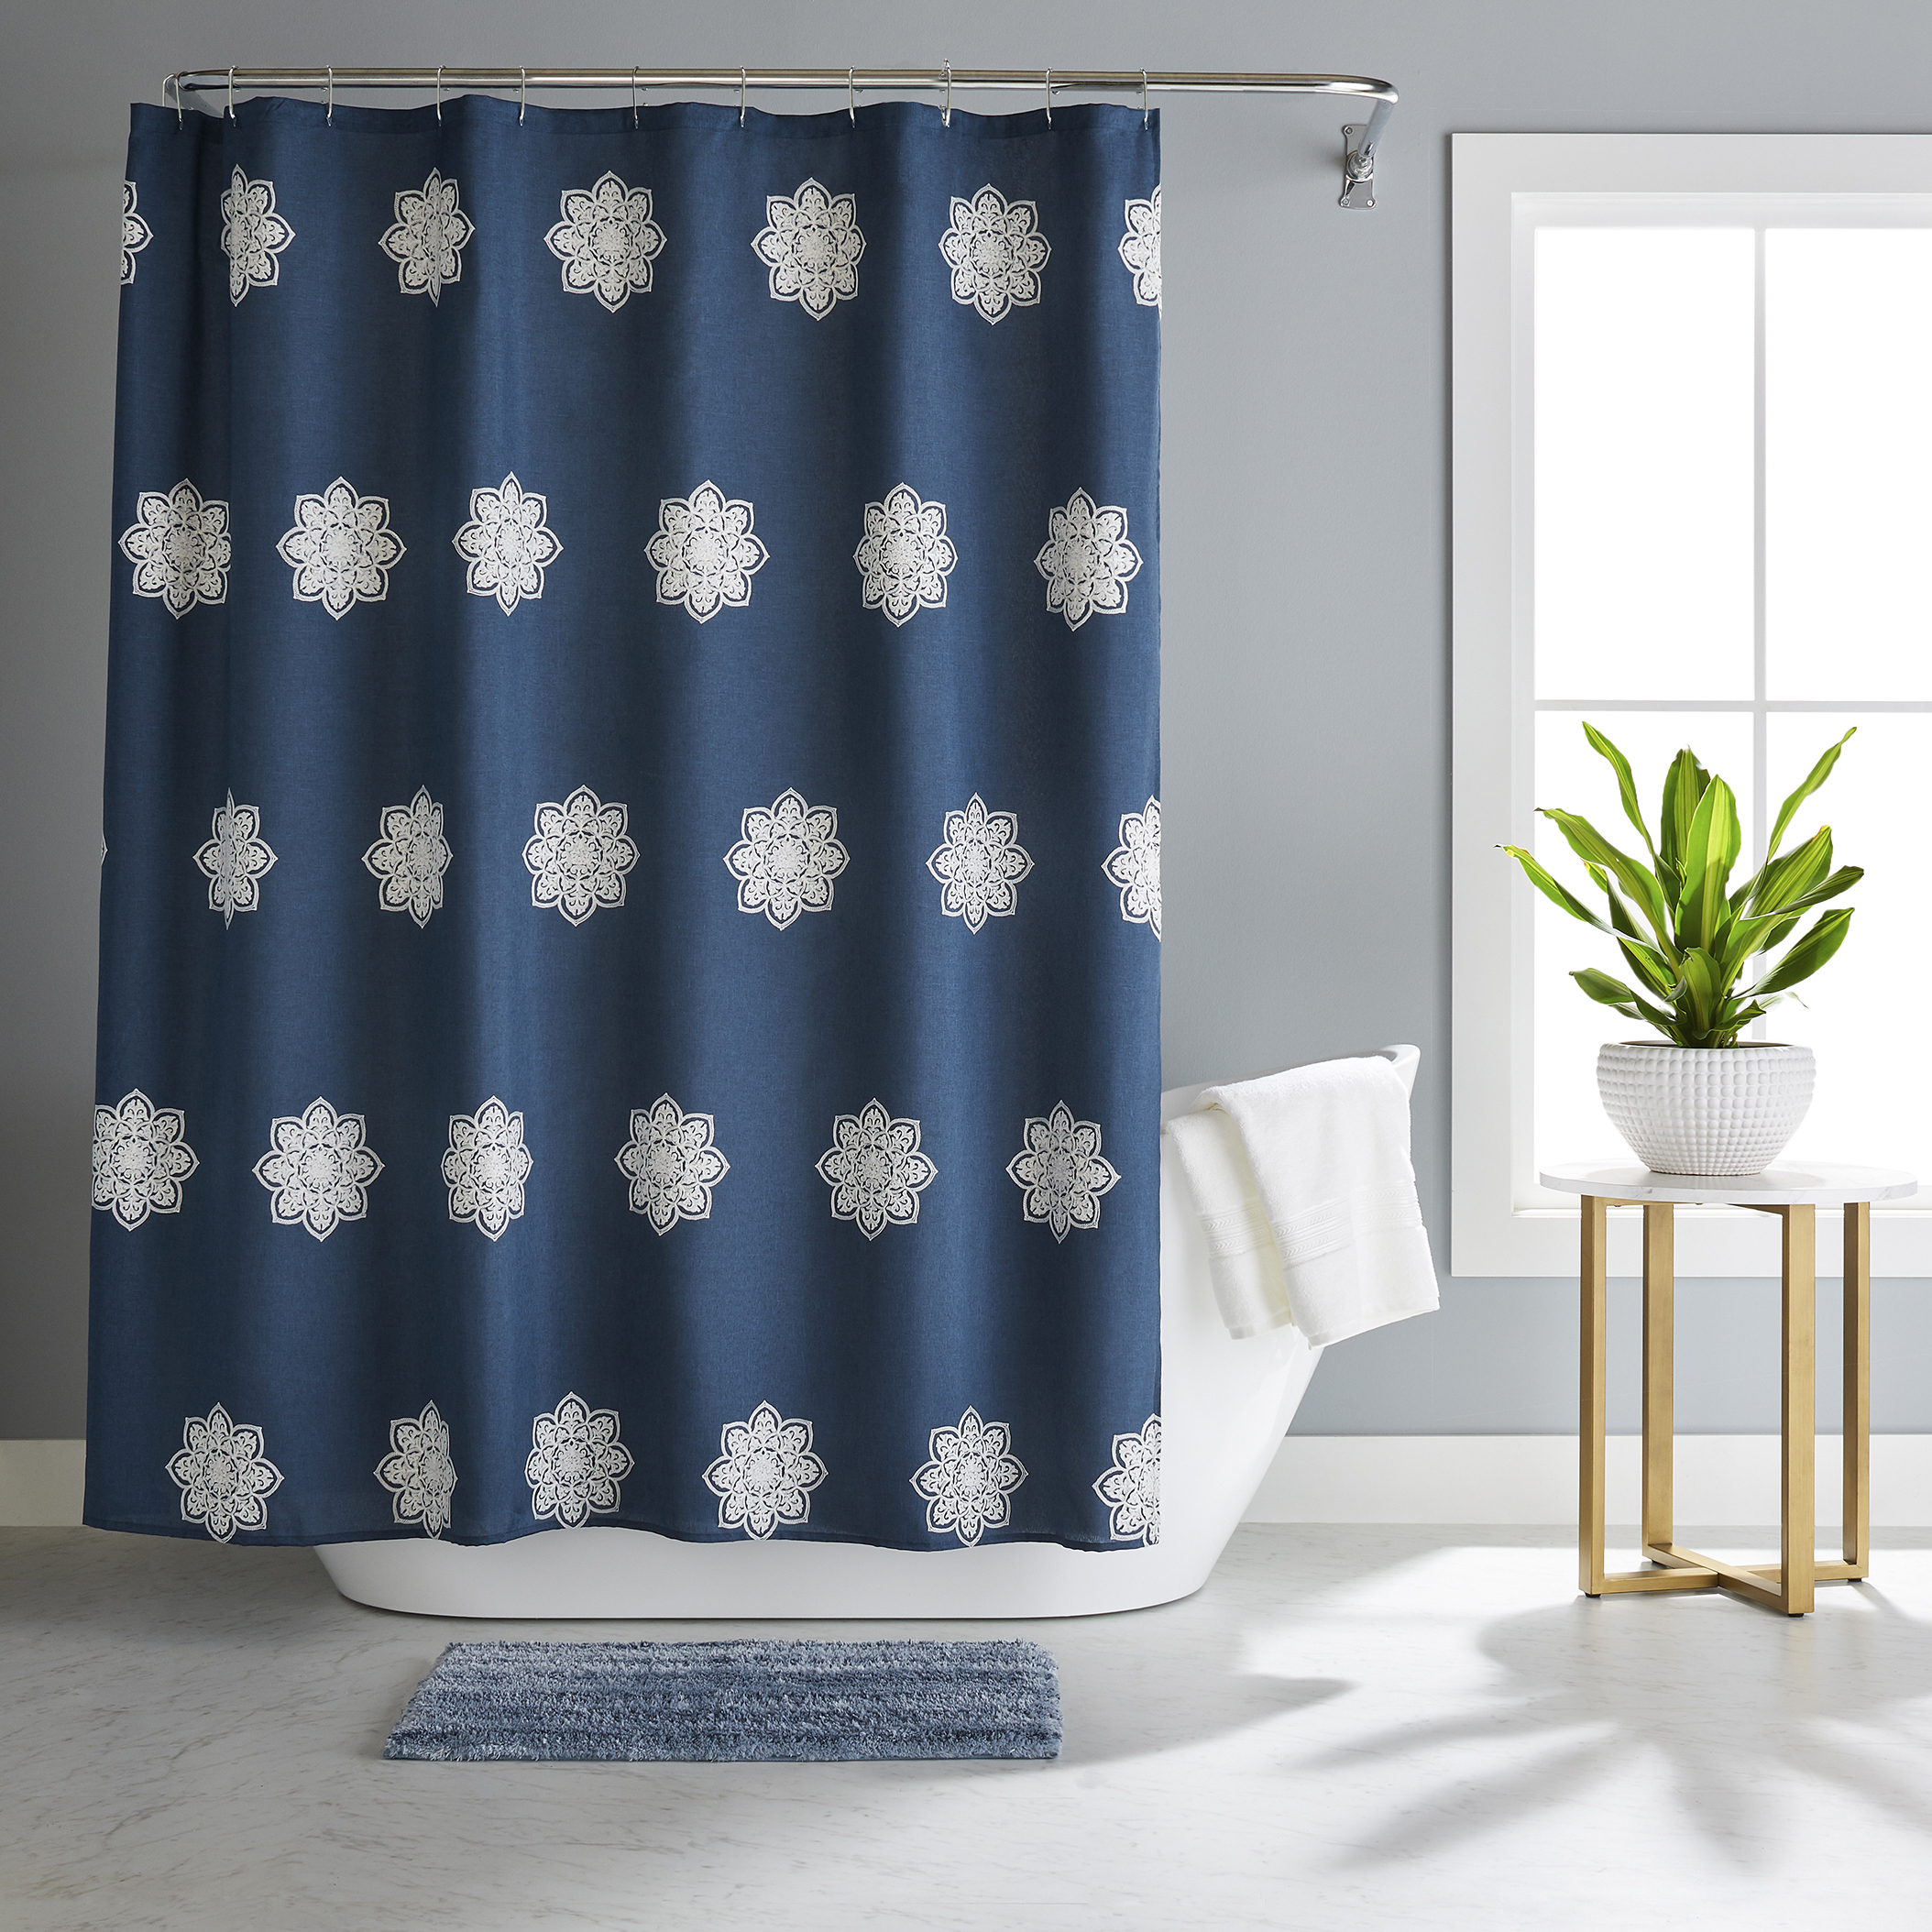 Better Homes and Gardens Embroidered Medallion 14 Piece Shower Curtain Set